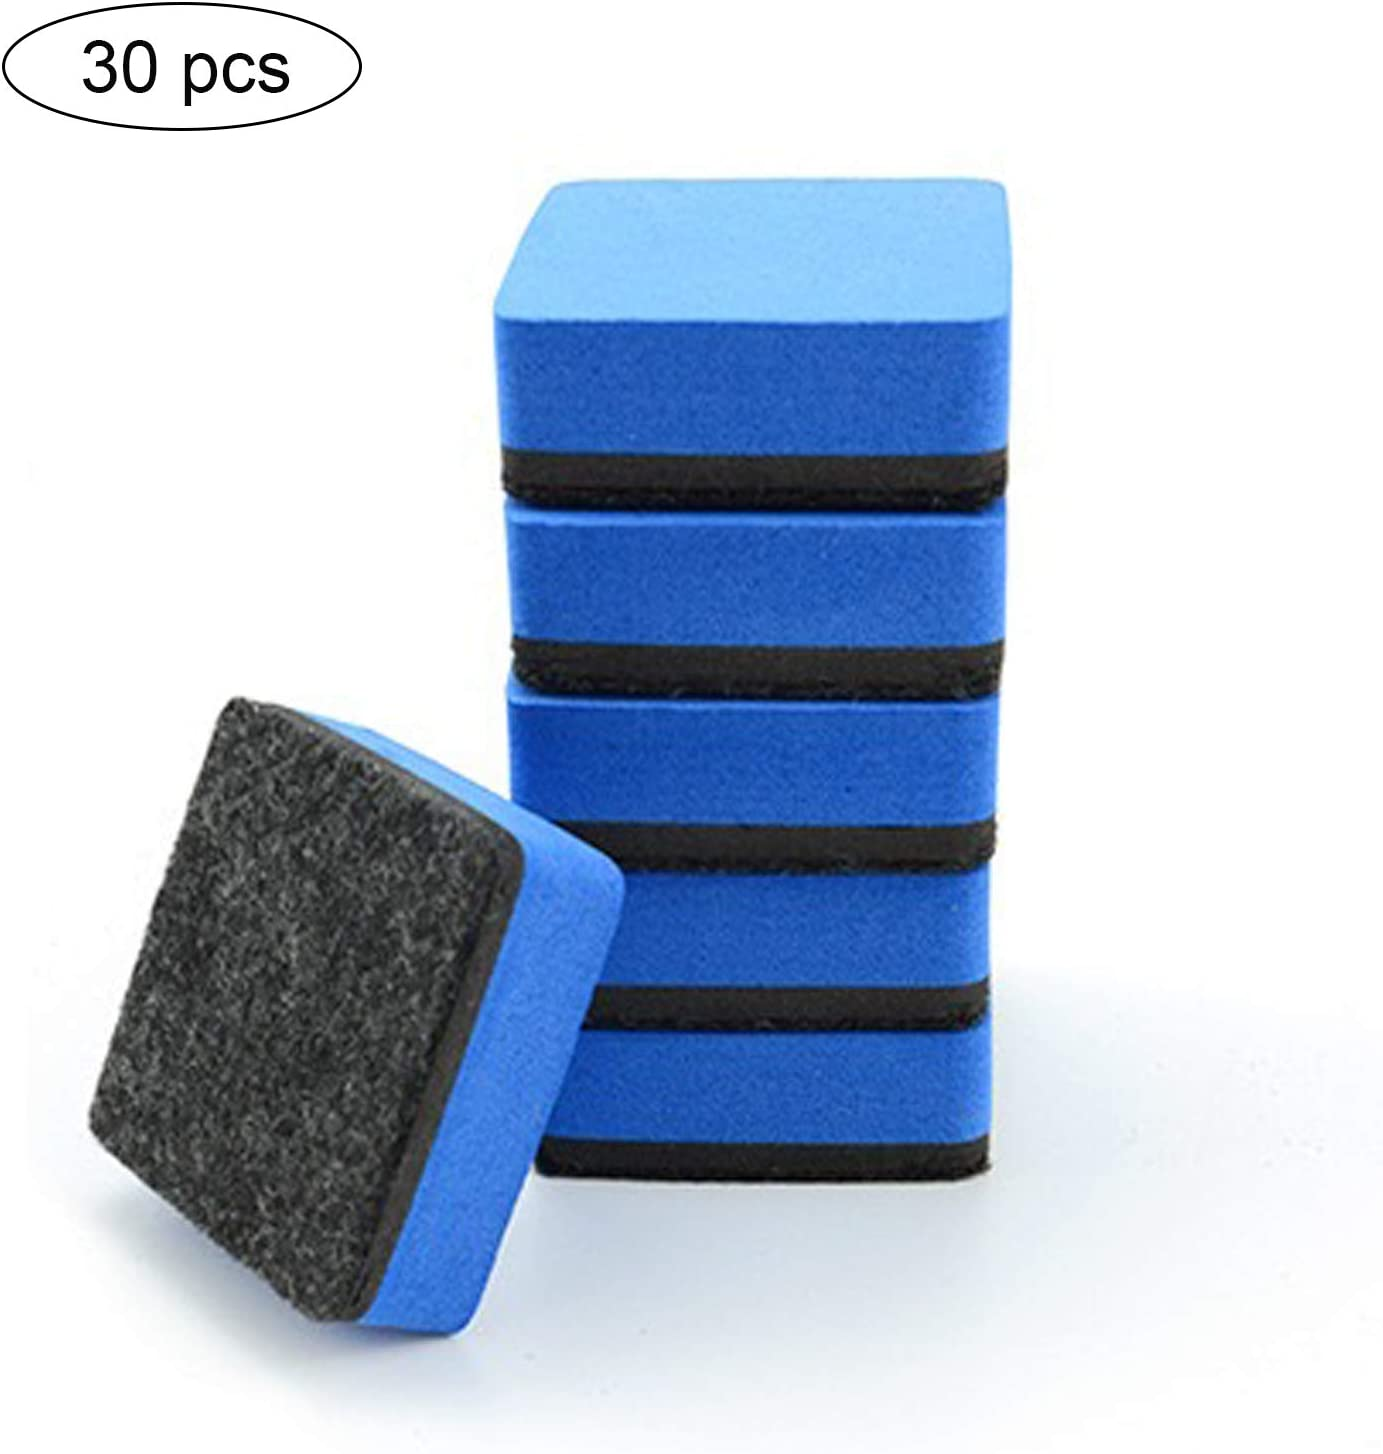 Red Magnetic Whiteboard Erasers 1.97 x 1.97 Inch 30 pcs Mini whiteboard Eraser Dry Erasers Chalkboard Cleaner Wiper for Classroom Home Office,